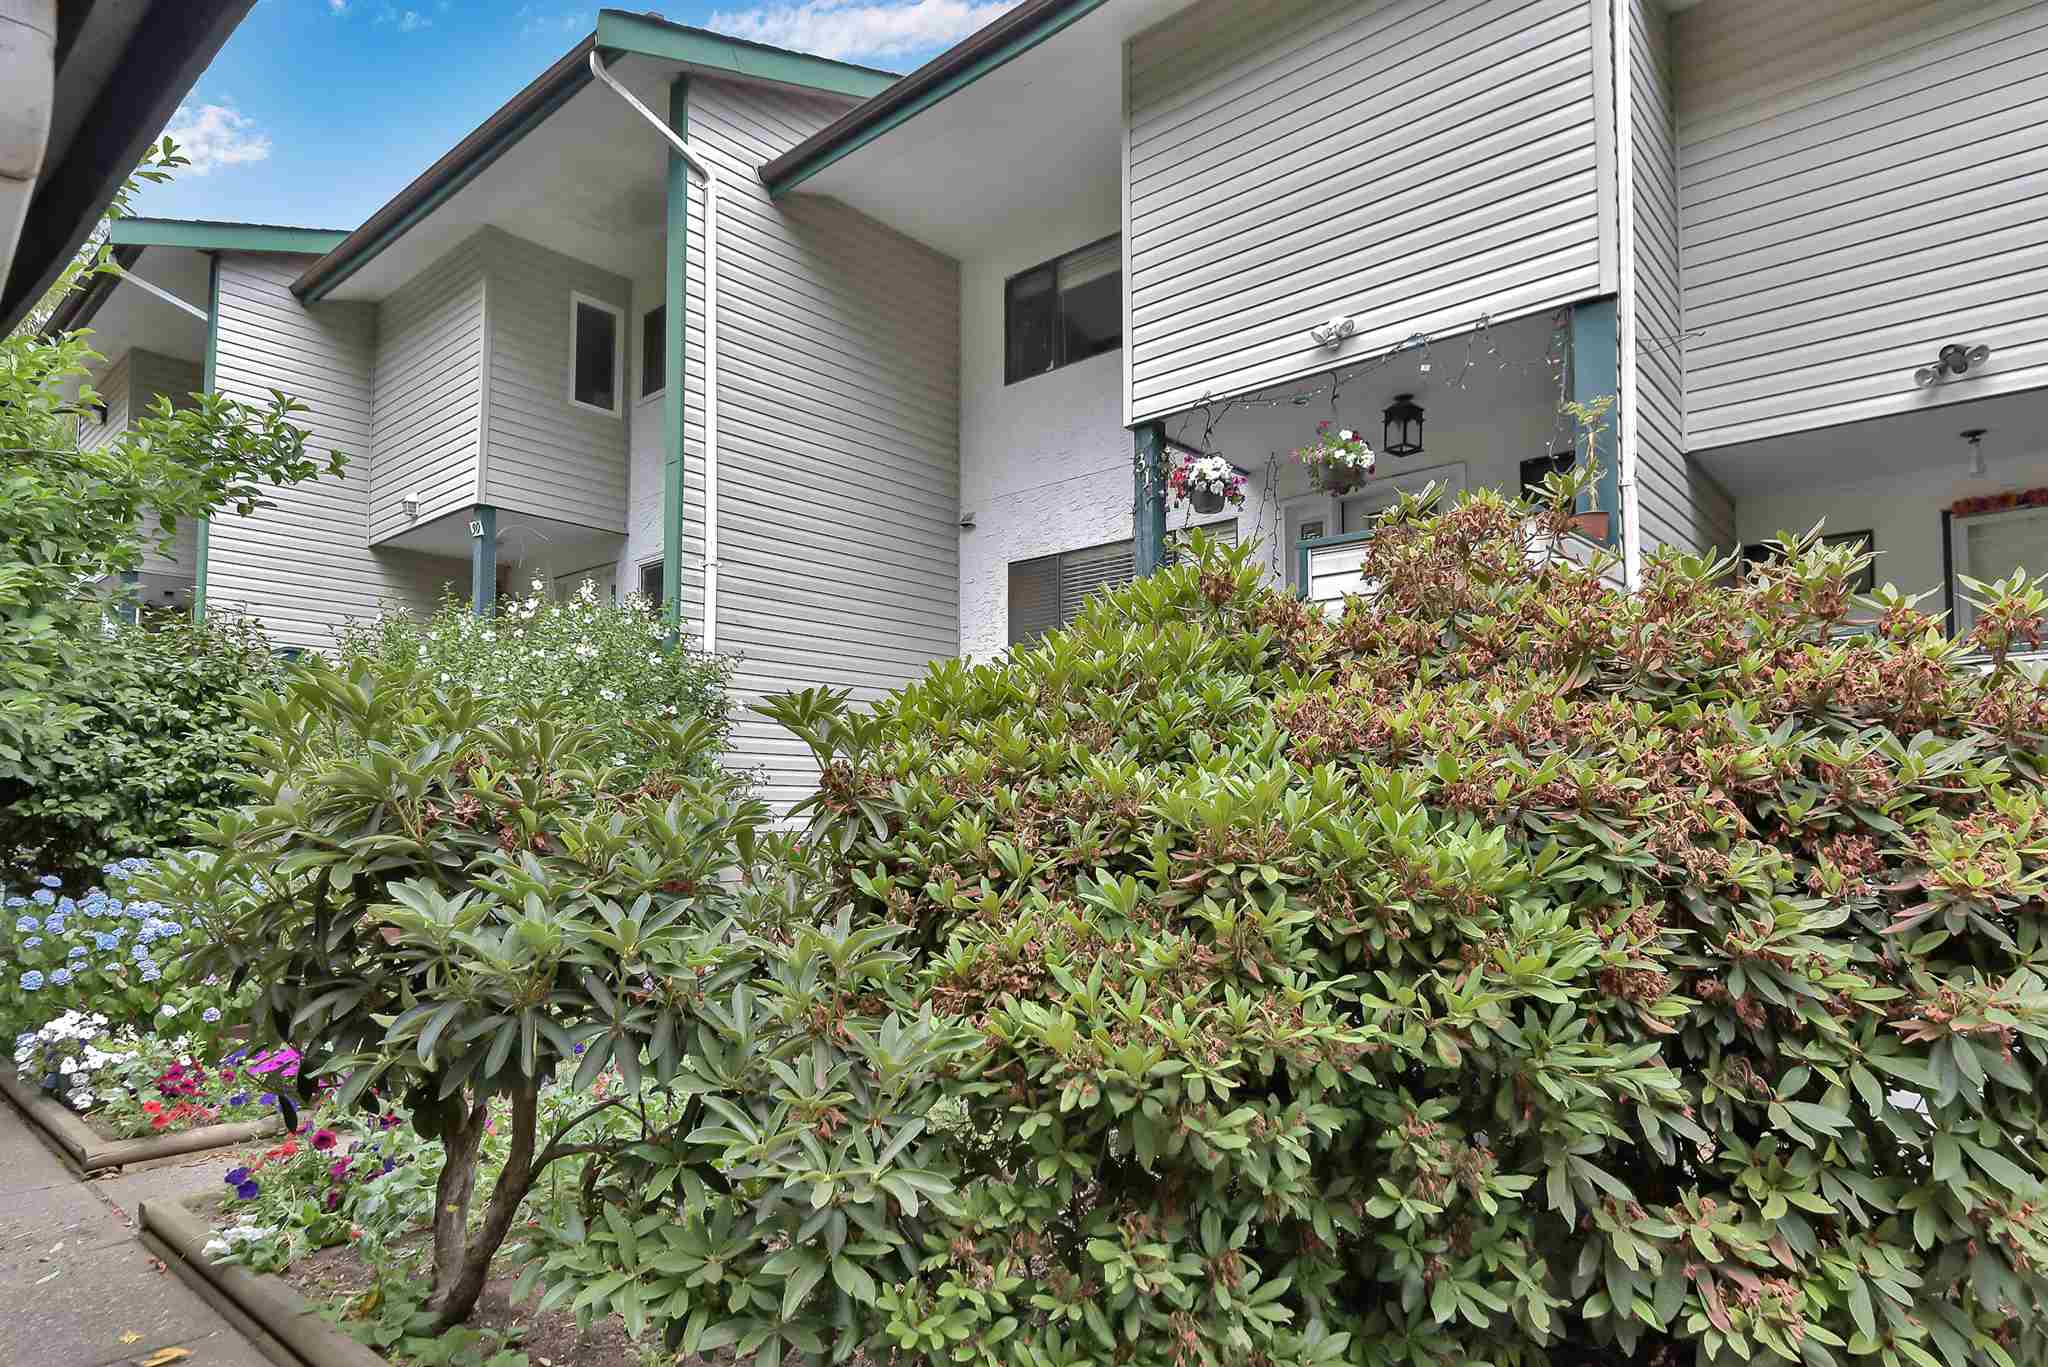 31 12045 93A AVENUE - Queen Mary Park Surrey Townhouse for sale, 4 Bedrooms (R2603608) - #3